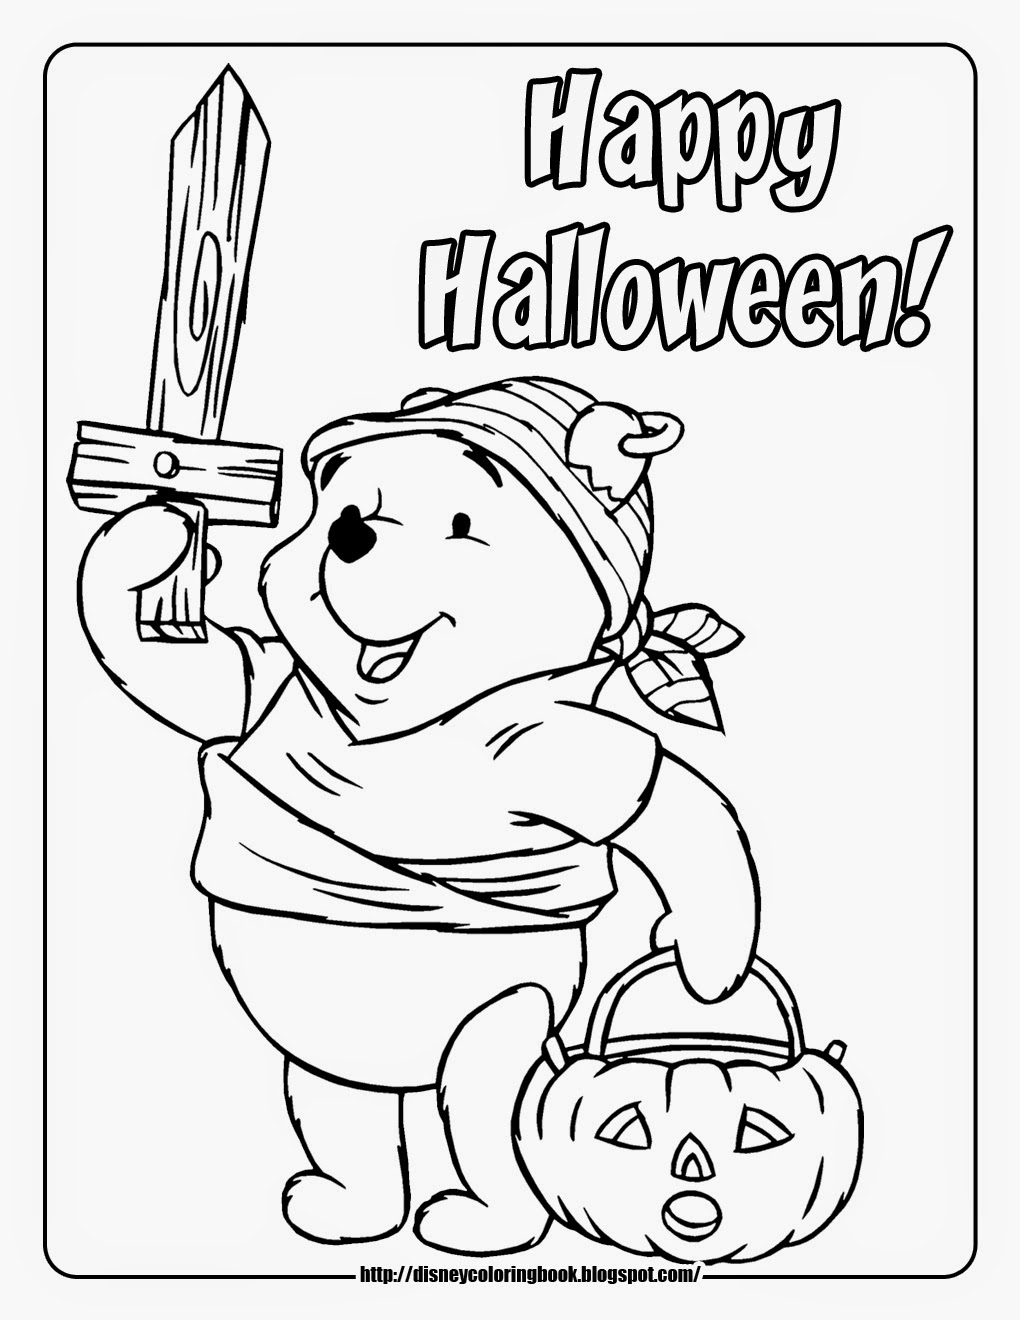 7 Disney Halloween Coloring Pages About Winne The Pooh